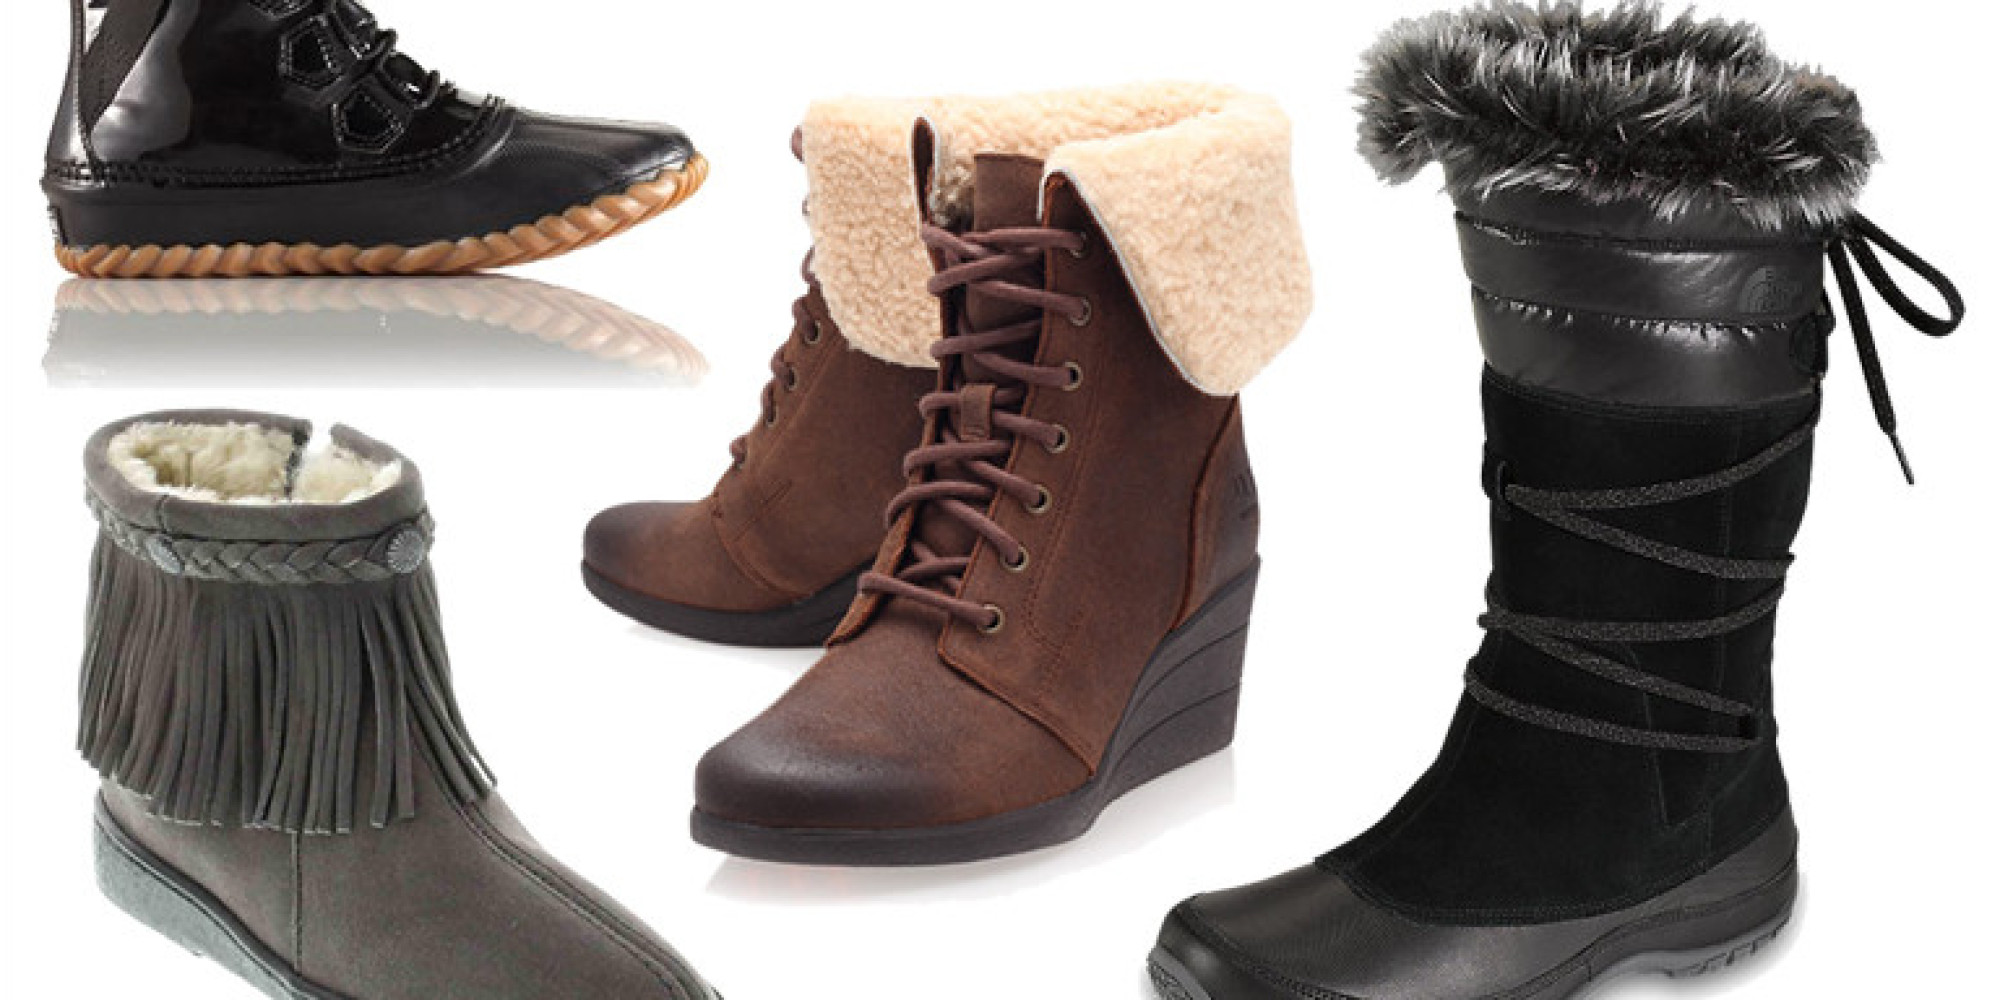 9 Winter Boots To Help You Stomp Through The Snow In Style